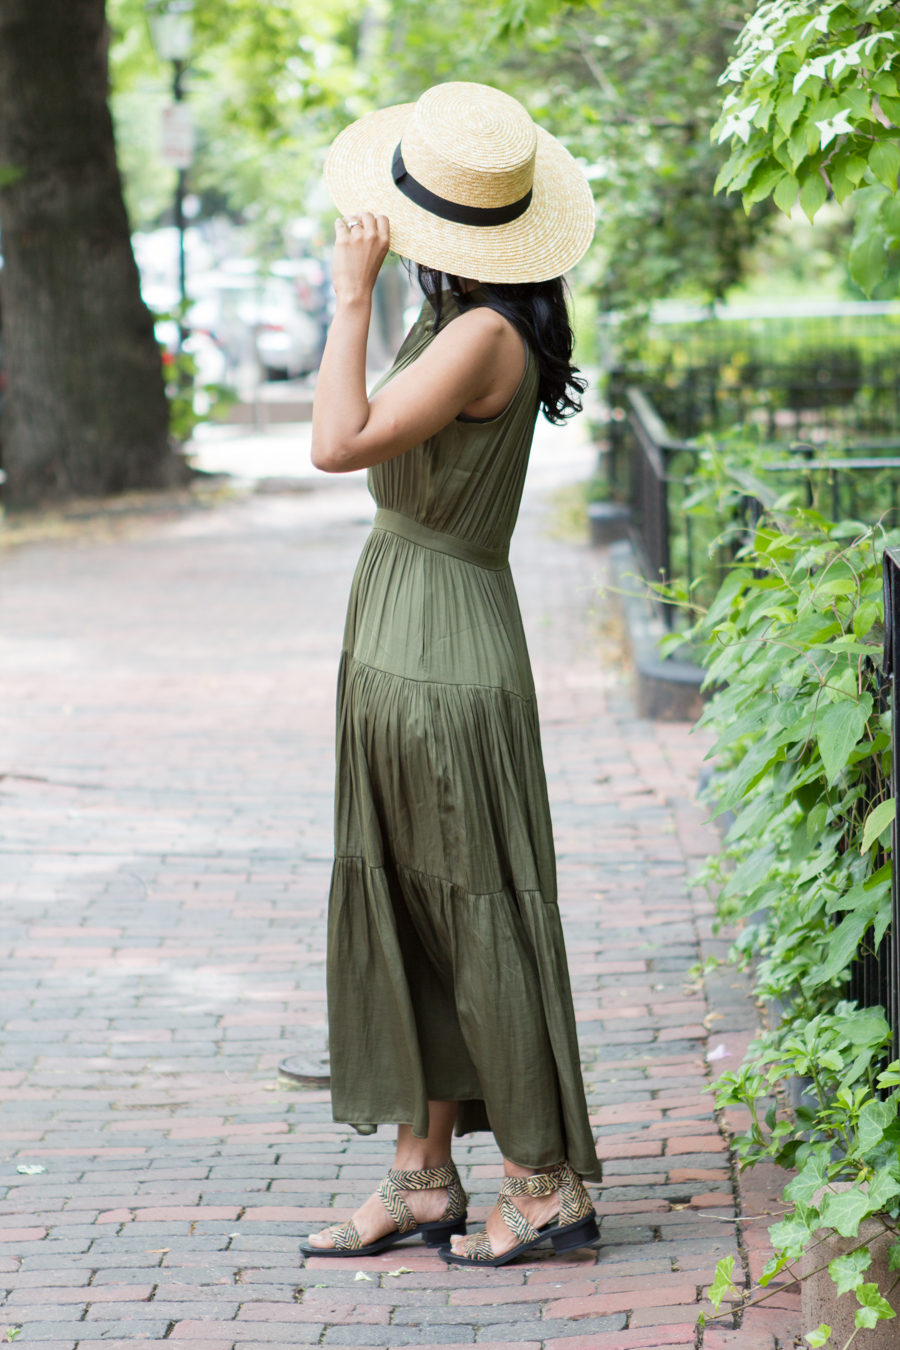 banana republic, summer style, circus by sam edelman, simple outfits, flowy dress, dressy outfit, casual outfit, summer style, look book, petite fashion, boater hat, american eagle outfitter